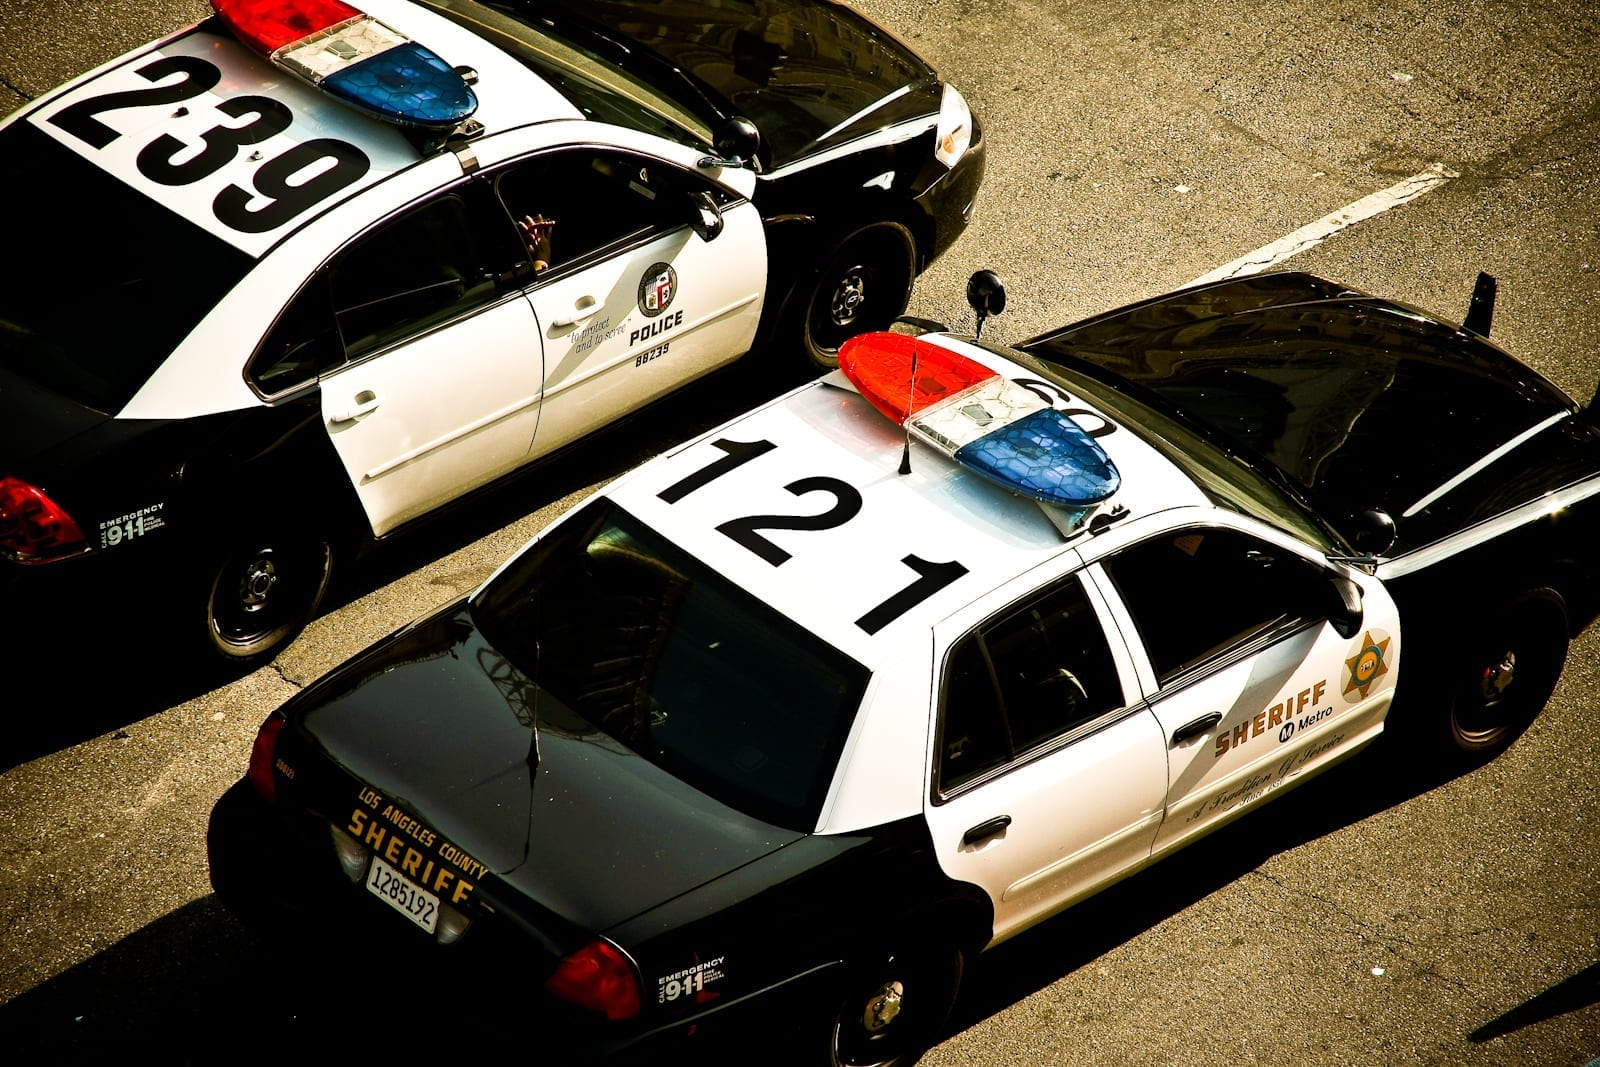 Police cars of the Los Angeles County Sheriff: image by James (Flickr: Old and new police cars), CC BY 2.0, via Wikimedia Commons, no changes.